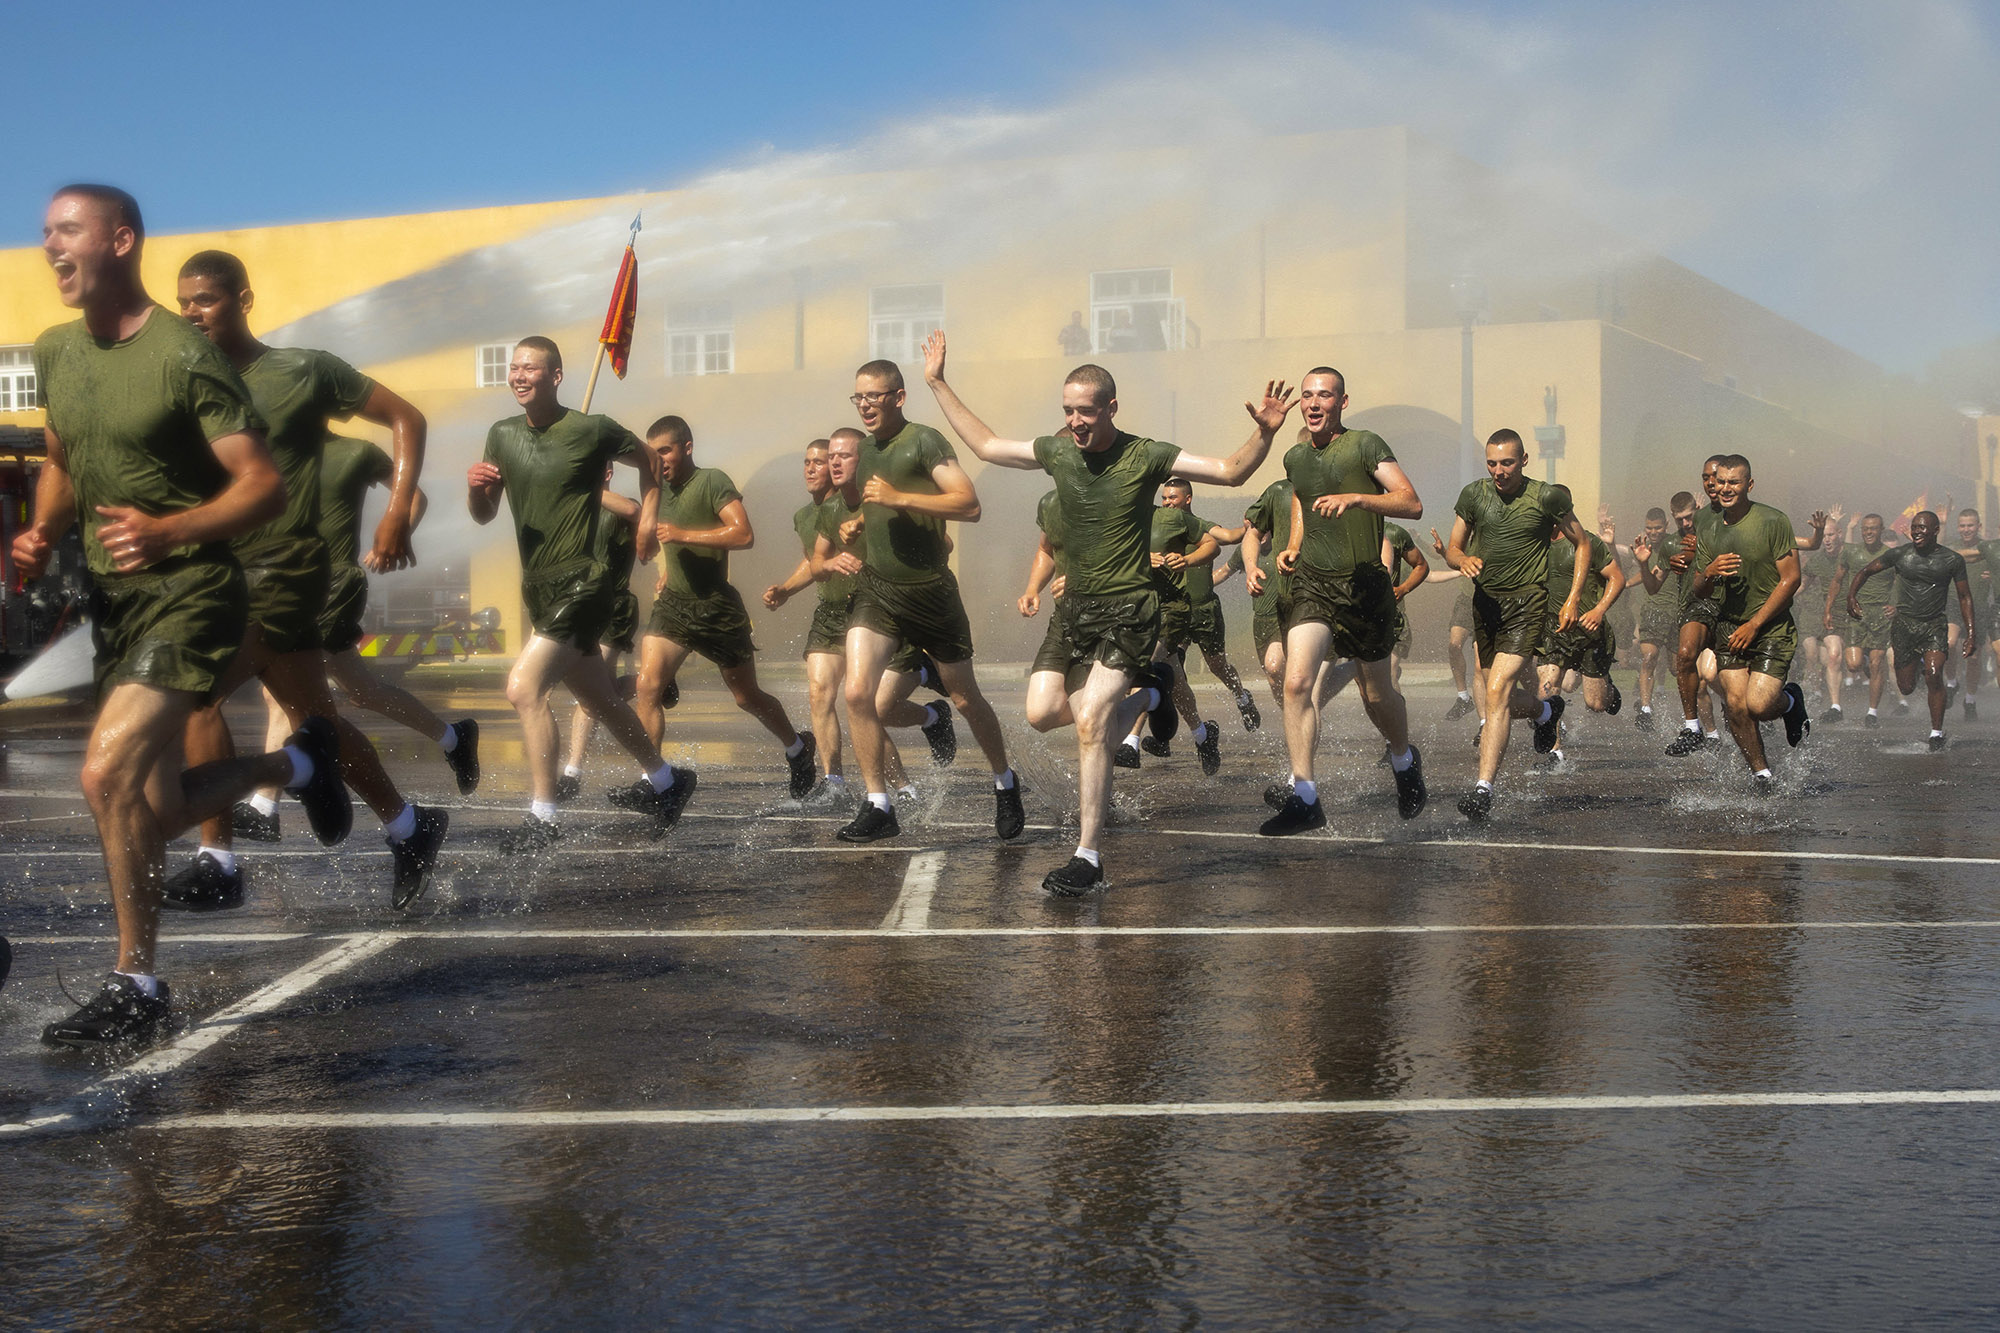 New Marines with Fox Company, 2nd Recruit Training Battalion, participate in a motivational run at Marine Corps Recruit Depot San Diego, April 28, 2021. (Sgt. Brooke C. Woods/Marine Corps)